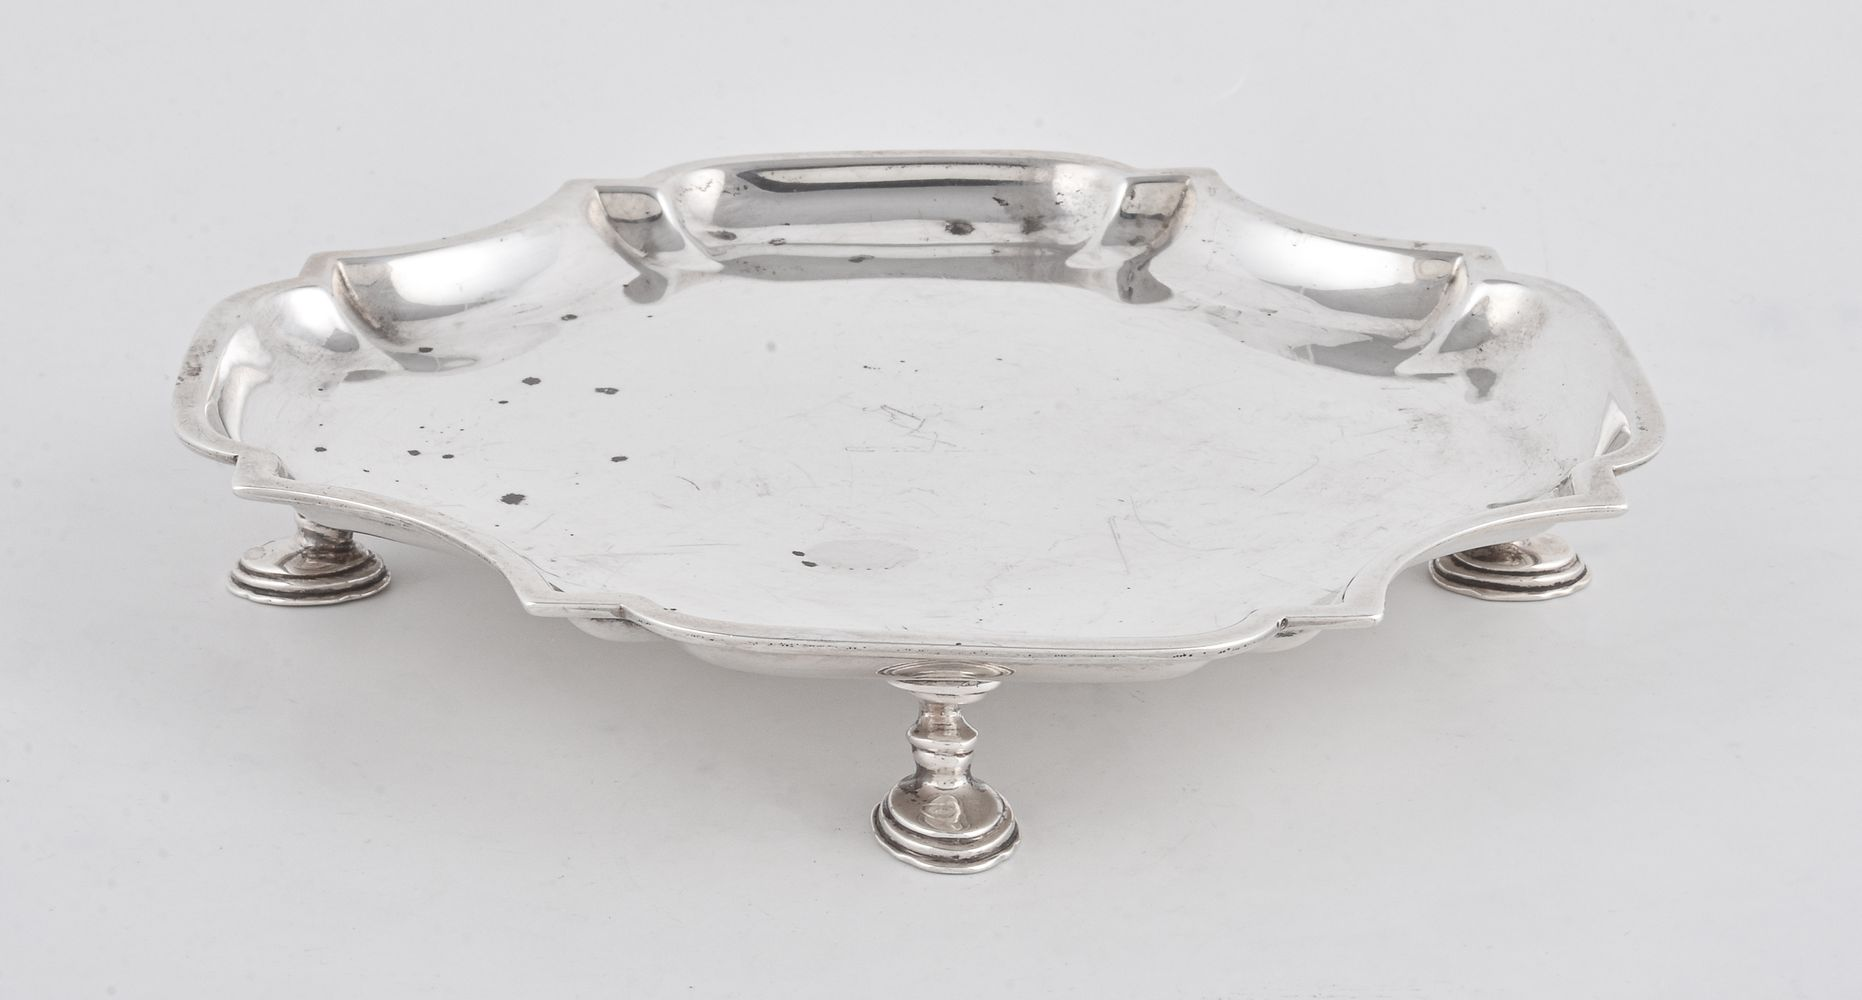 A silver waiter by William Comyns & Sons - Image 2 of 2